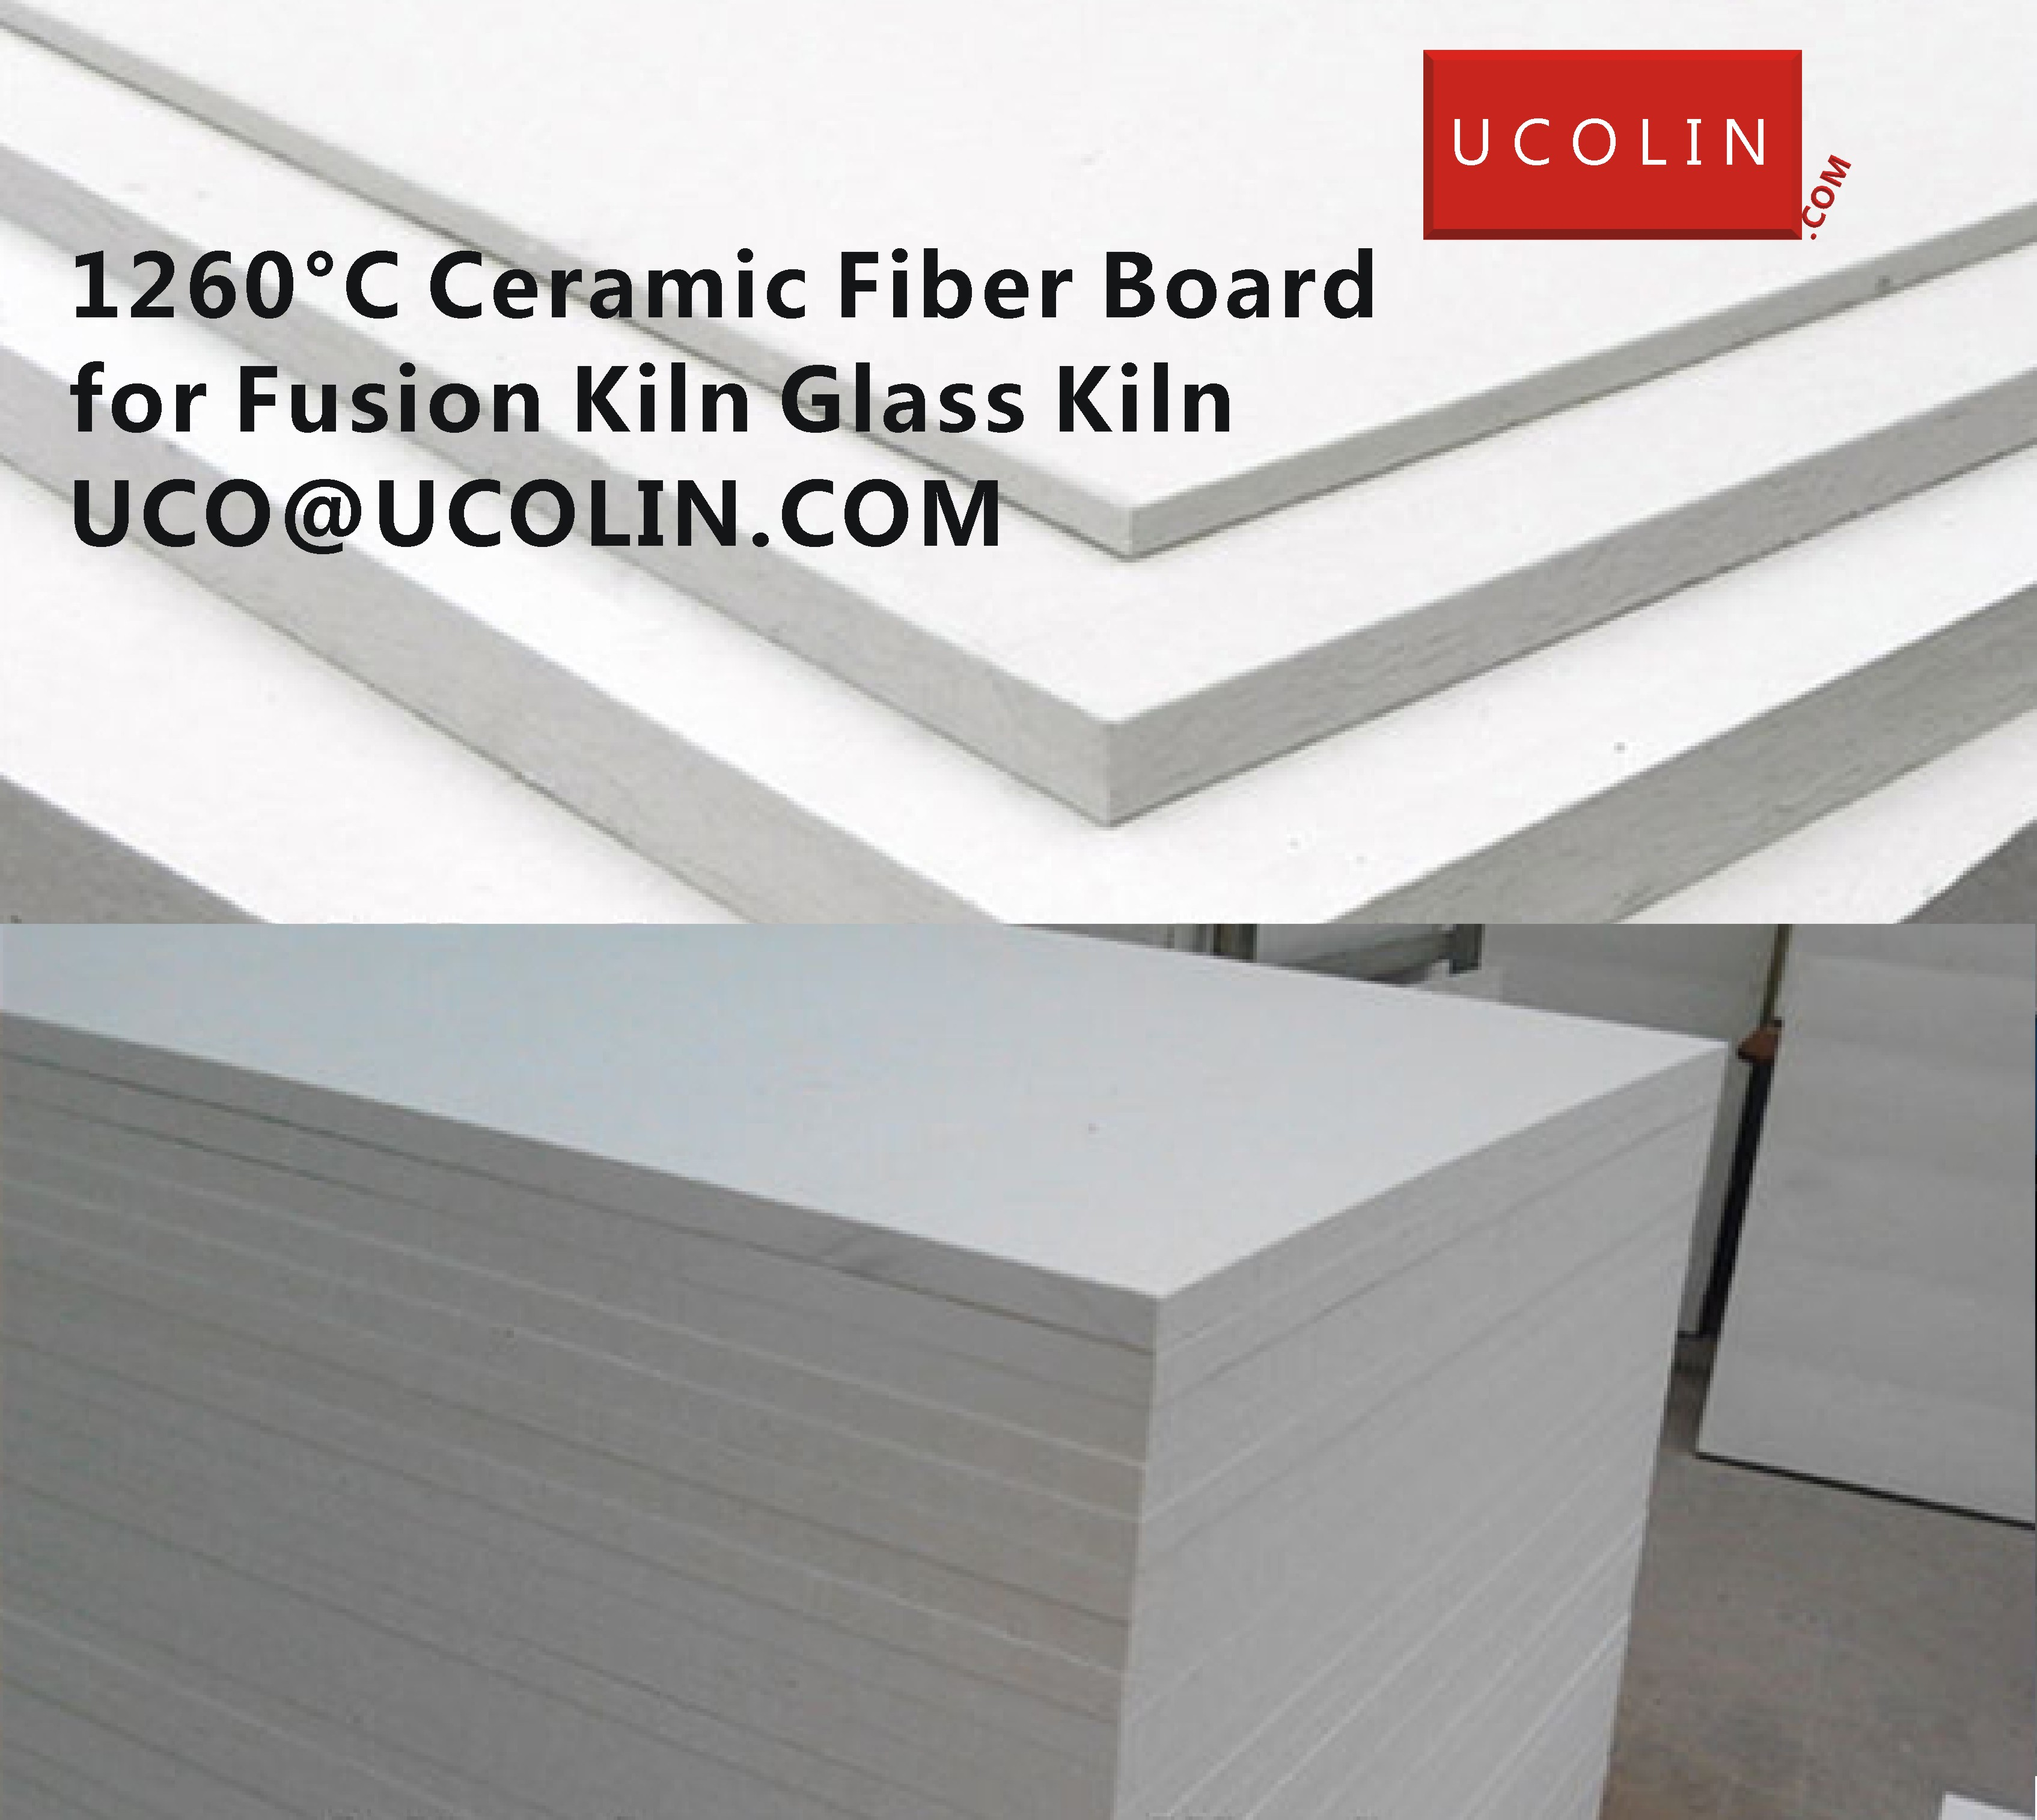 1260°C Ceramic Fiber Board for Fusion Kiln Glass Kiln